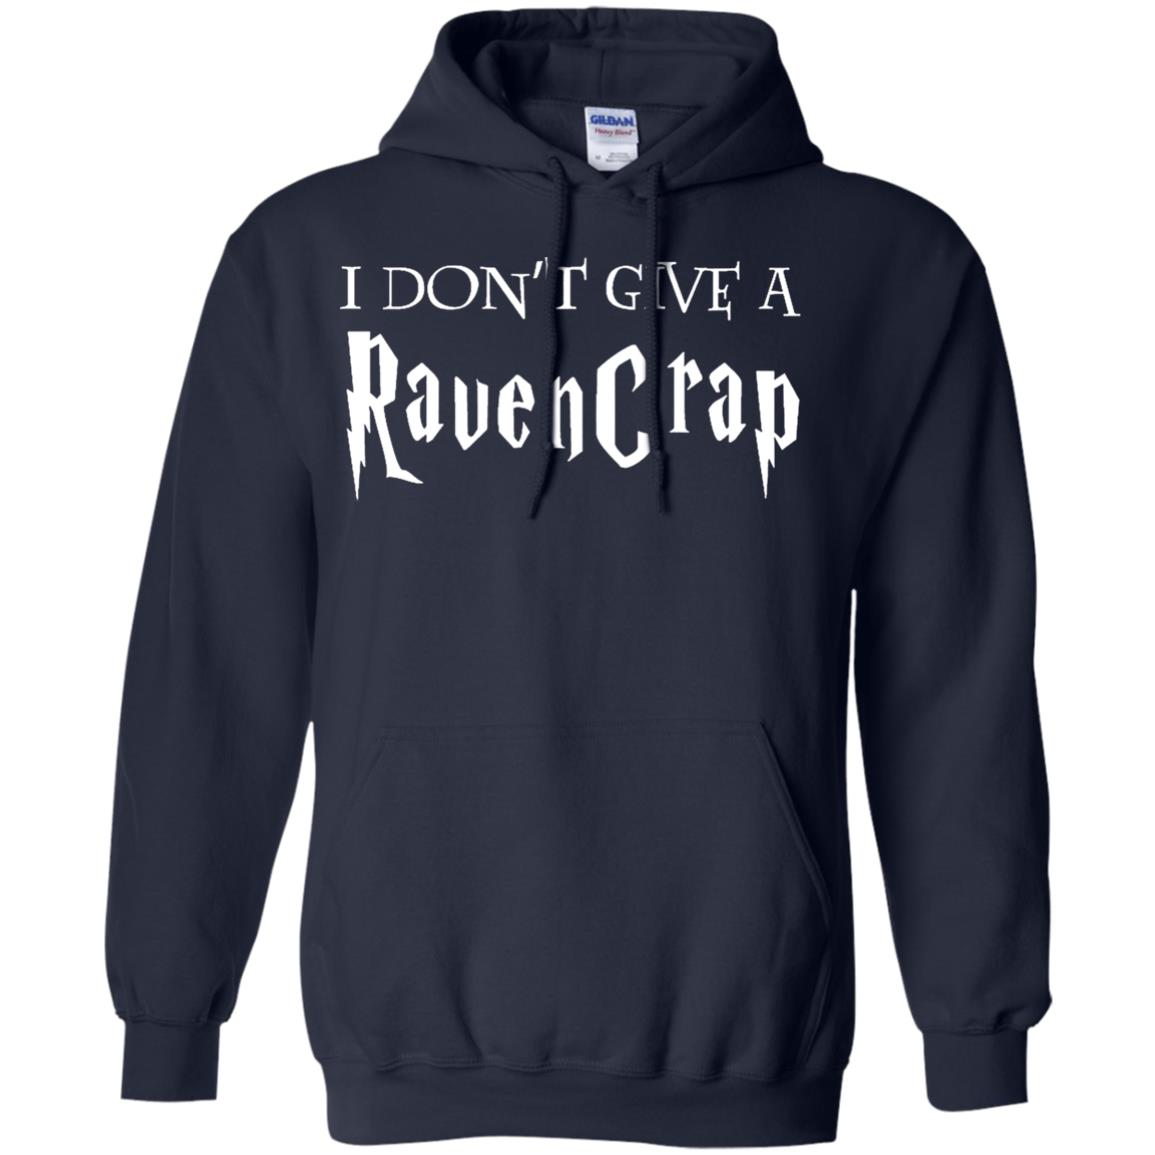 image 691 - Harry Potter: I don't give a Ravencrap shirt & sweater